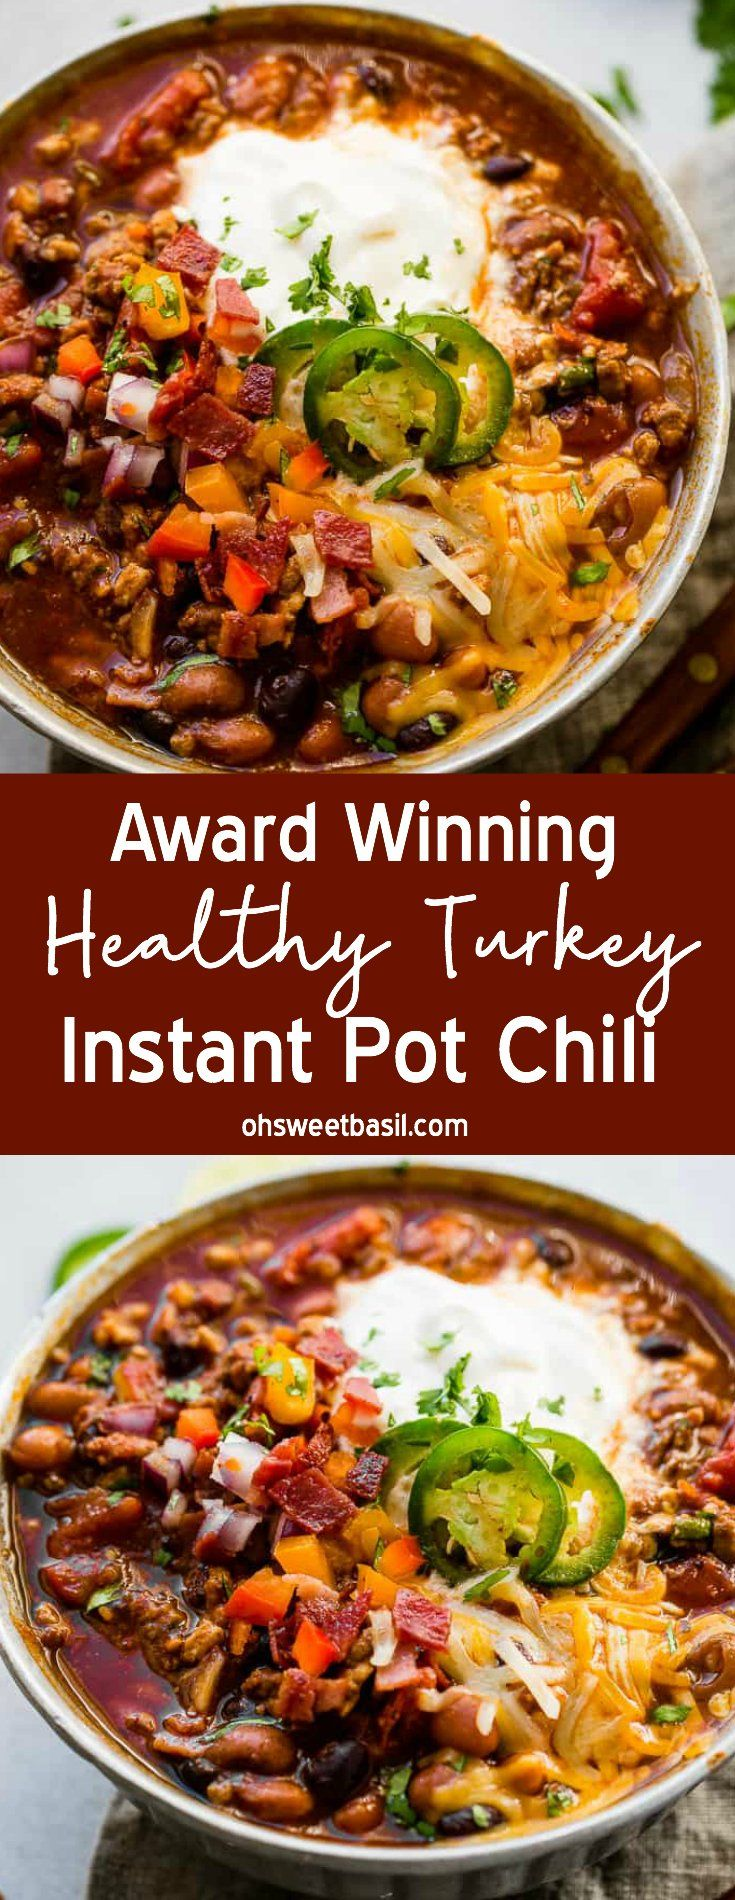 Photo of Award Winning Healthy Turkey Instant Pot Chili – Oh Sweet Basil